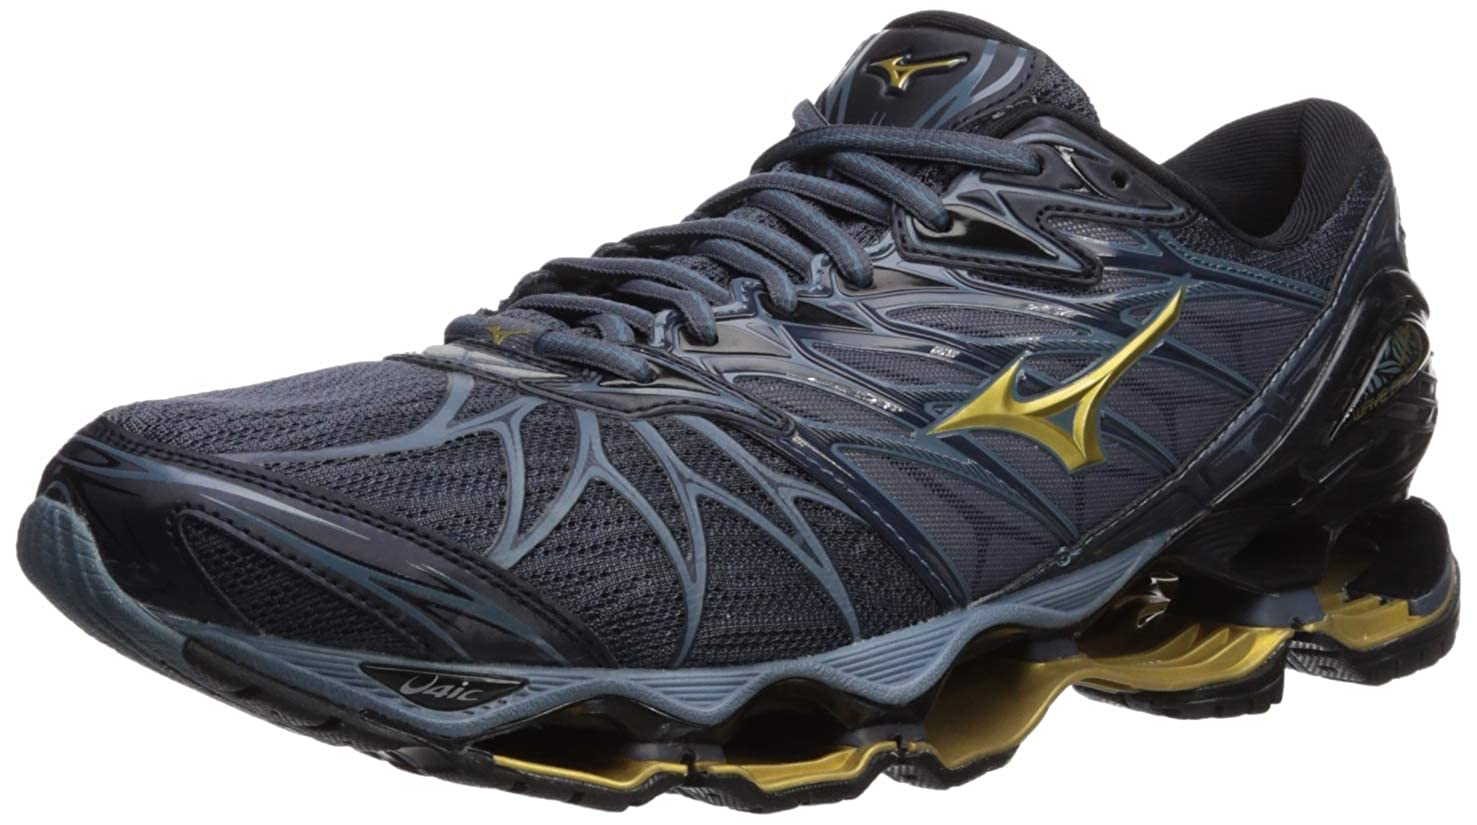 premium selection 3640f 1b008 Amazon.com   Mizuno Wave Prophecy 7 Men s Running Shoes   Road Running